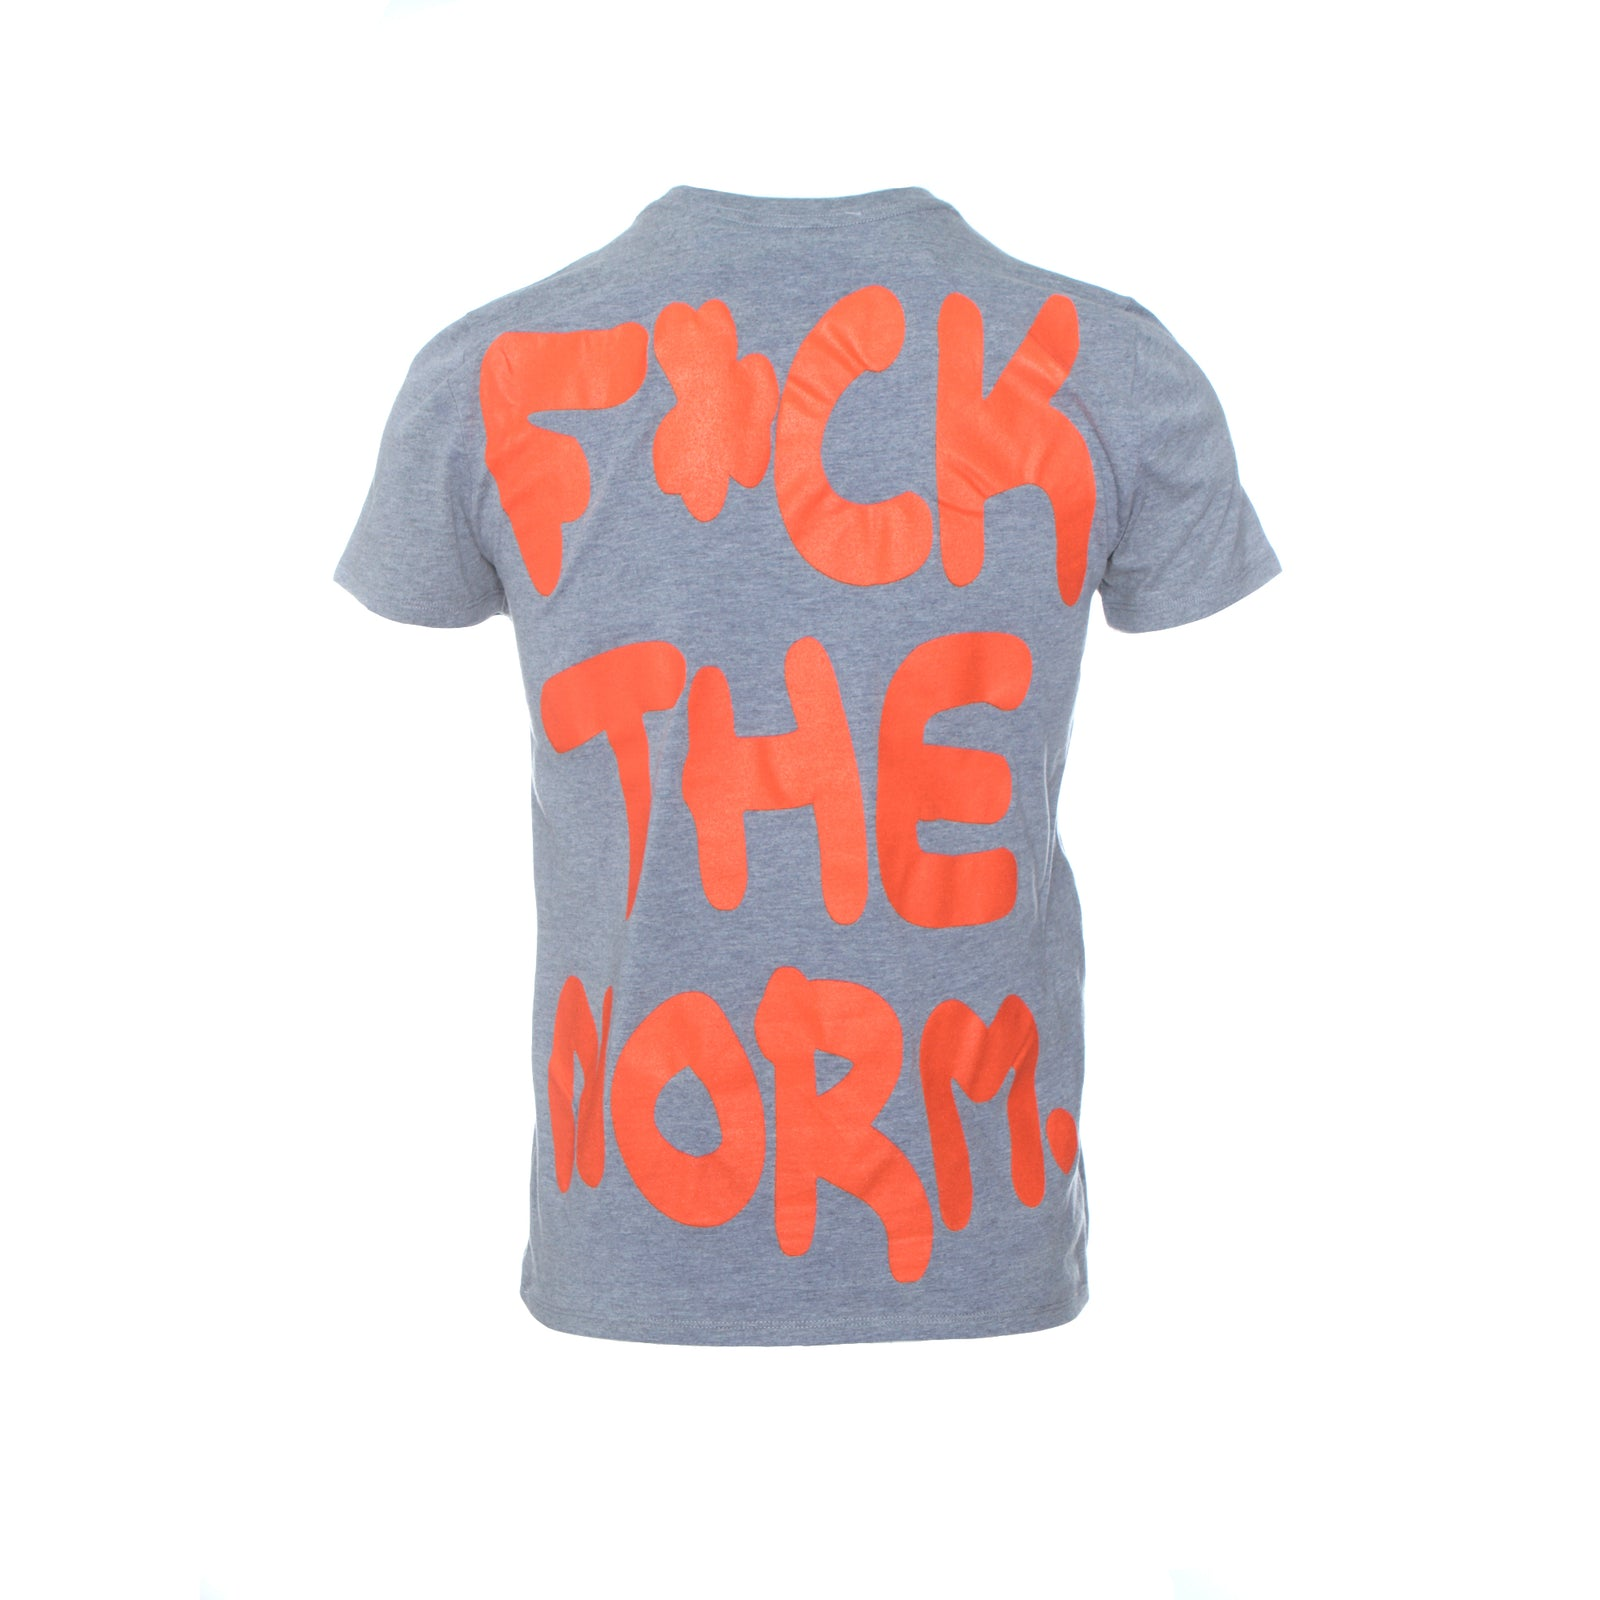 Fashion Geek F**k The Norm Men's SS T-Shirt Light Grey Neon Orange